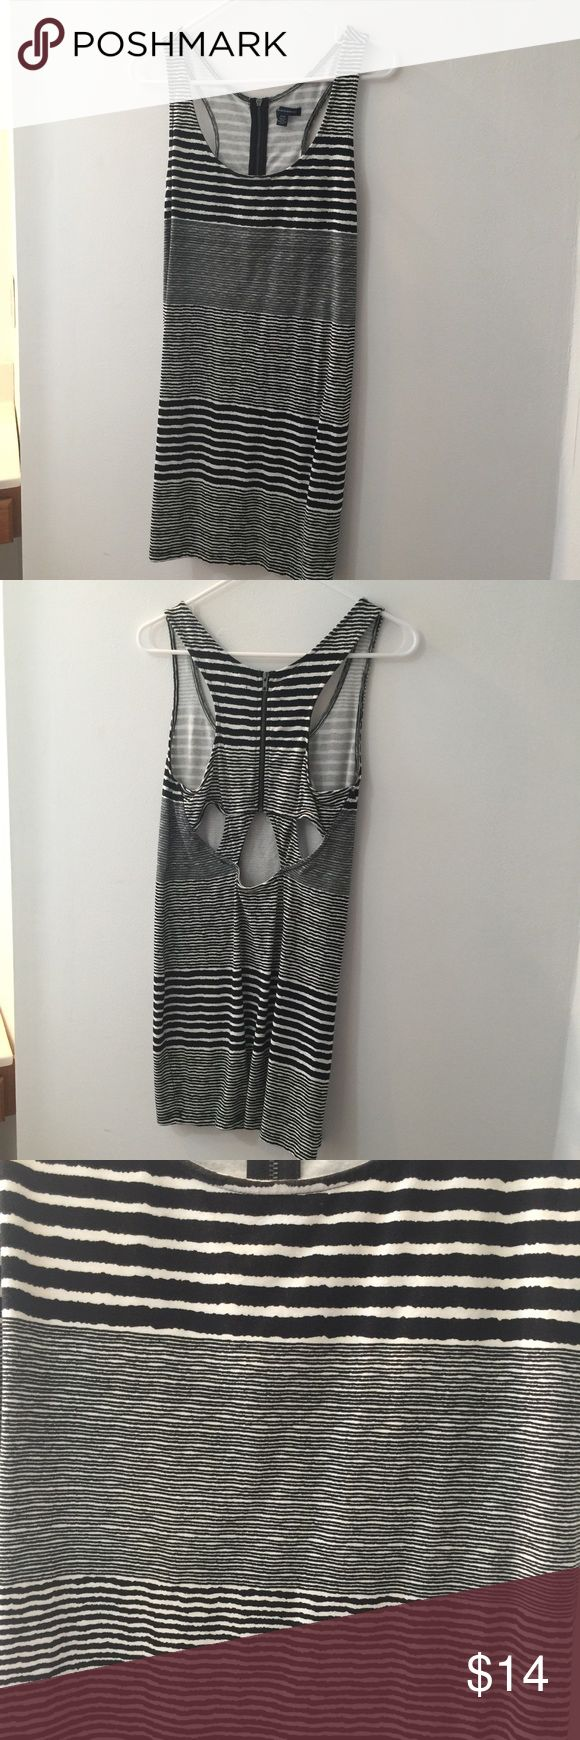 American Eagle Striped Mini Dress Has only been worn twice, it's like new. It's a size medium. There's a zipper in the back. There are also cut outs in the back. I do not trade or hold items for anyone. Price is firm. American Eagle Outfitters Dresses Mini